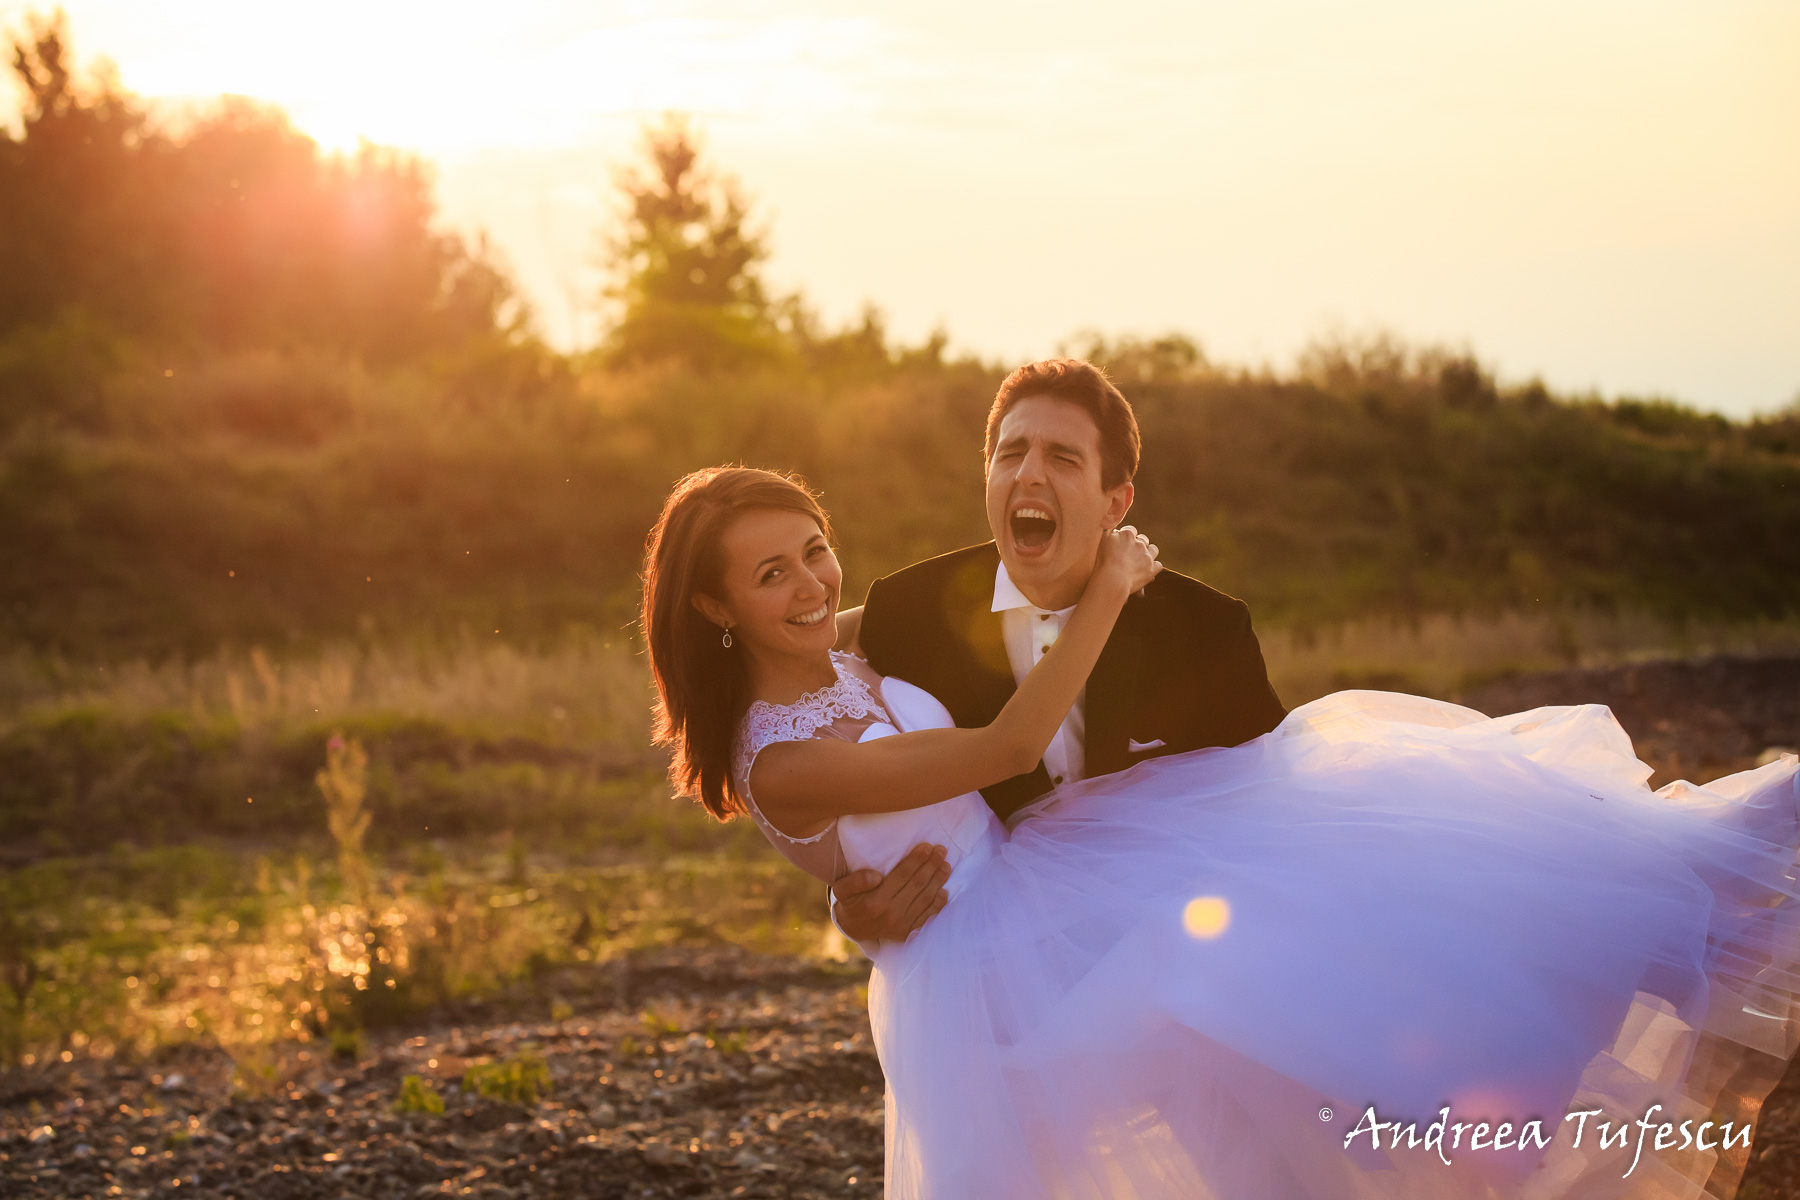 Wedding Photography by Andreea Tufescu - A & E Trash the Dress - Rock the Frock session riverside